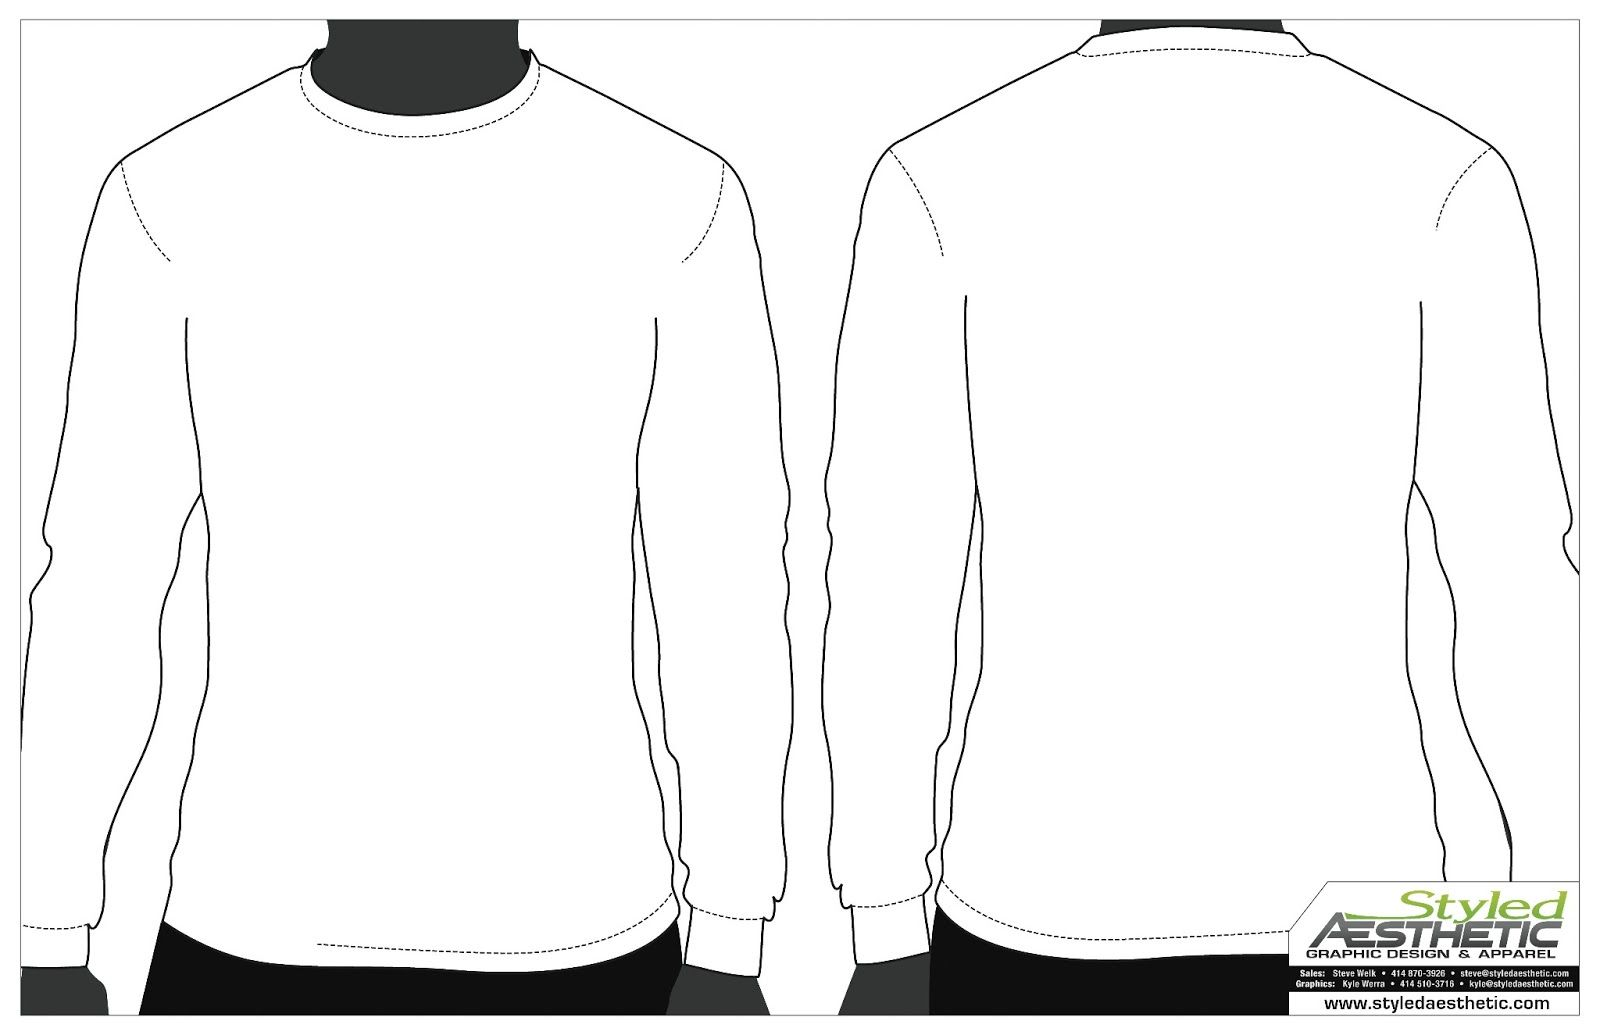 Download 12 Long Sleeve Blank T Shirt Template Psd Images Long With Blank T Shirt Design Template Psd Best Sam T Shirt Design Template Shirt Template Blank T Shirts